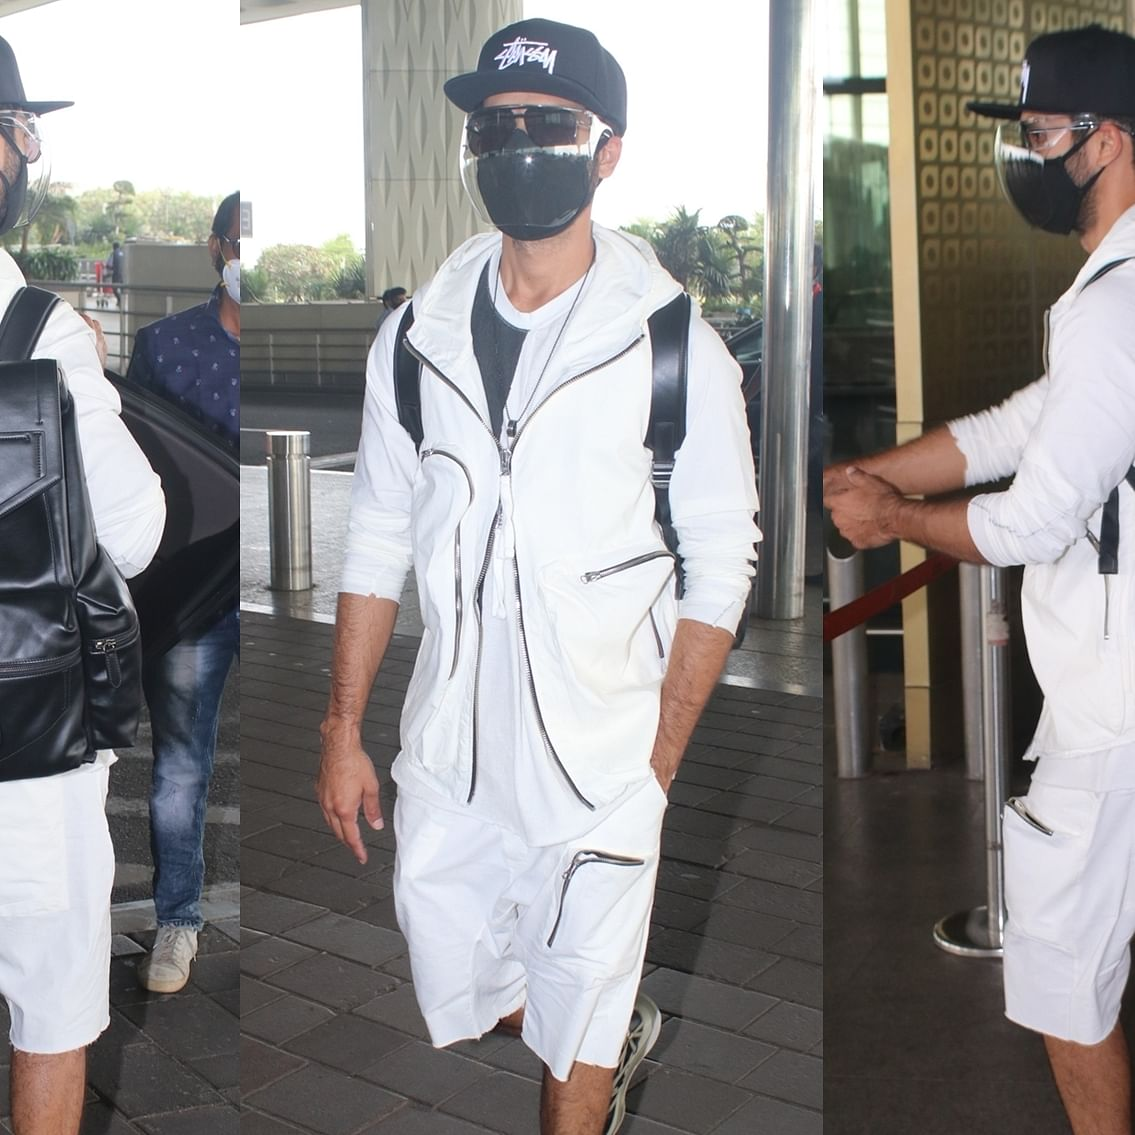 Shahid Kapoor flaunts Rs 2.2 lakh backpack in a dapper ensemble at Mumbai airport